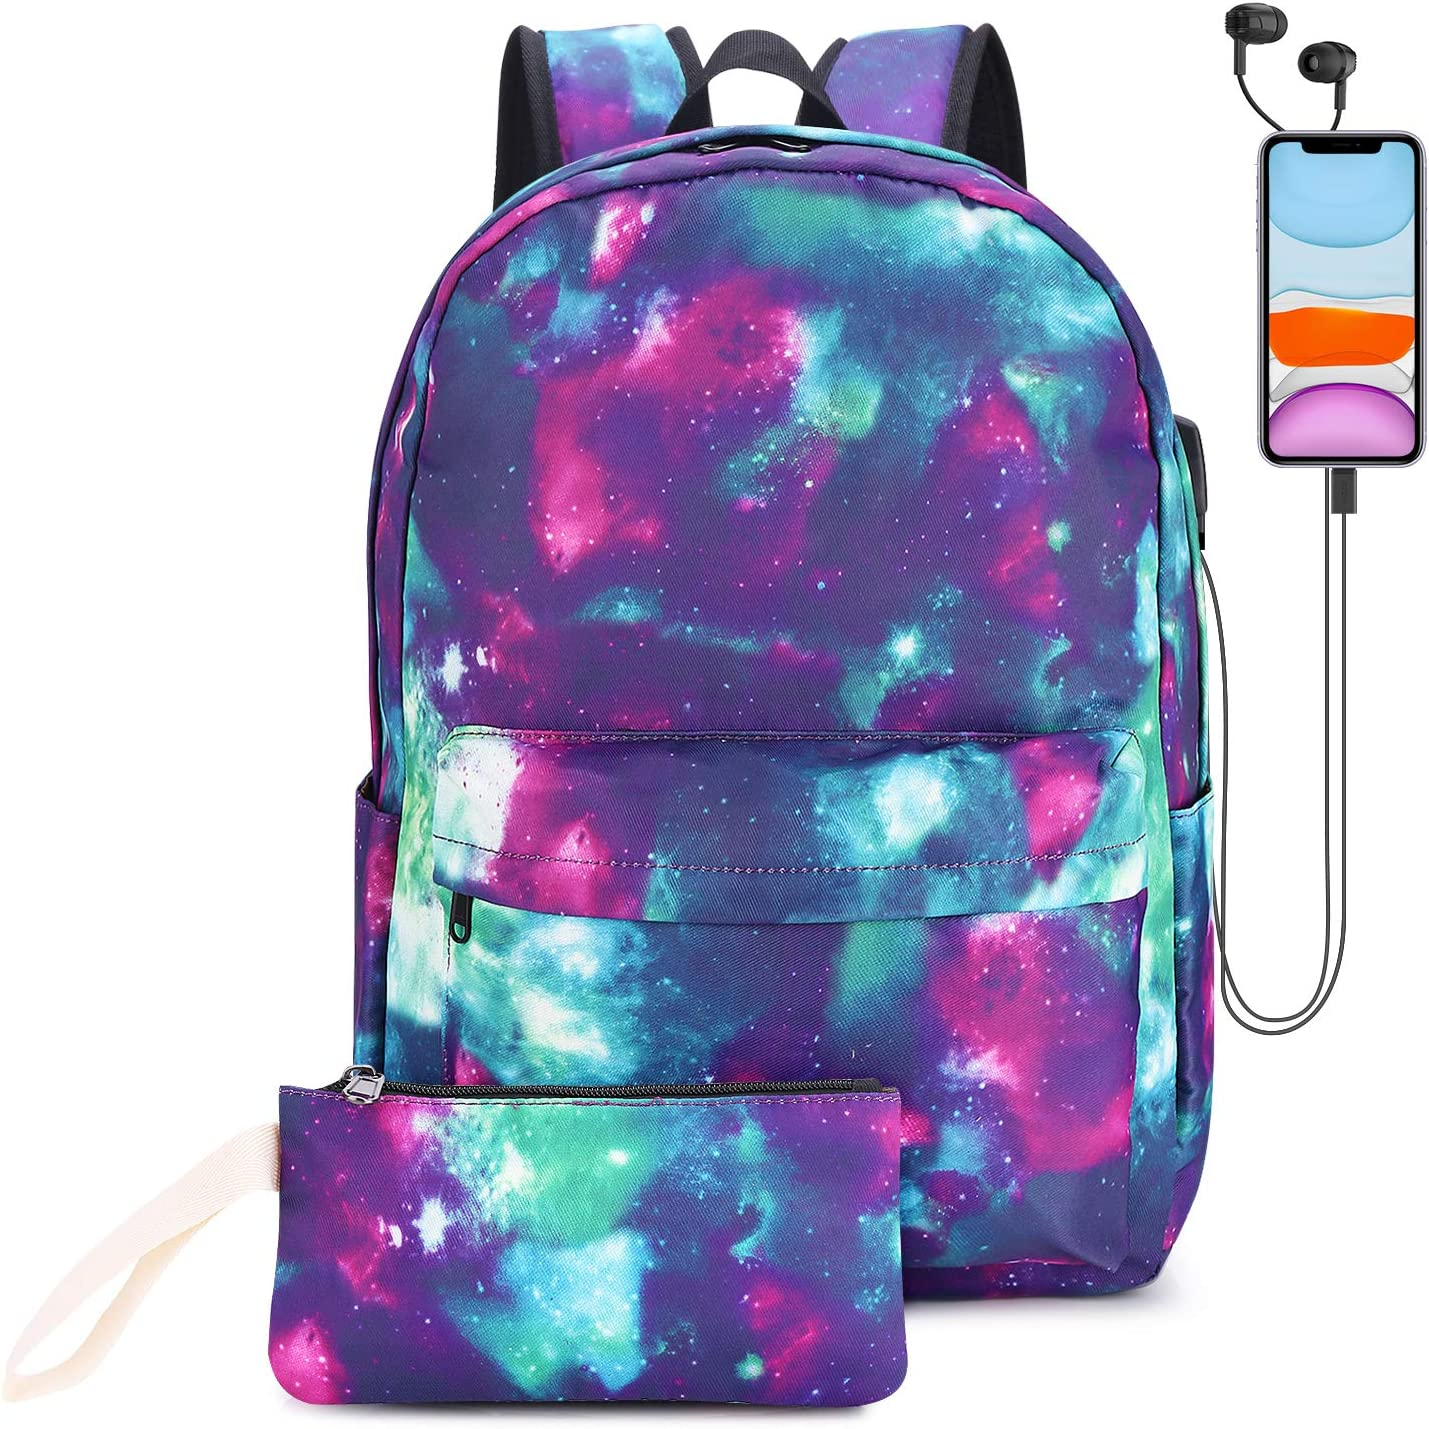 EZYCOK Galaxy Canvas Backpack for Women Teen Girls with USB Charging Port College School Backpack with Pencil Pouch, Fits 14